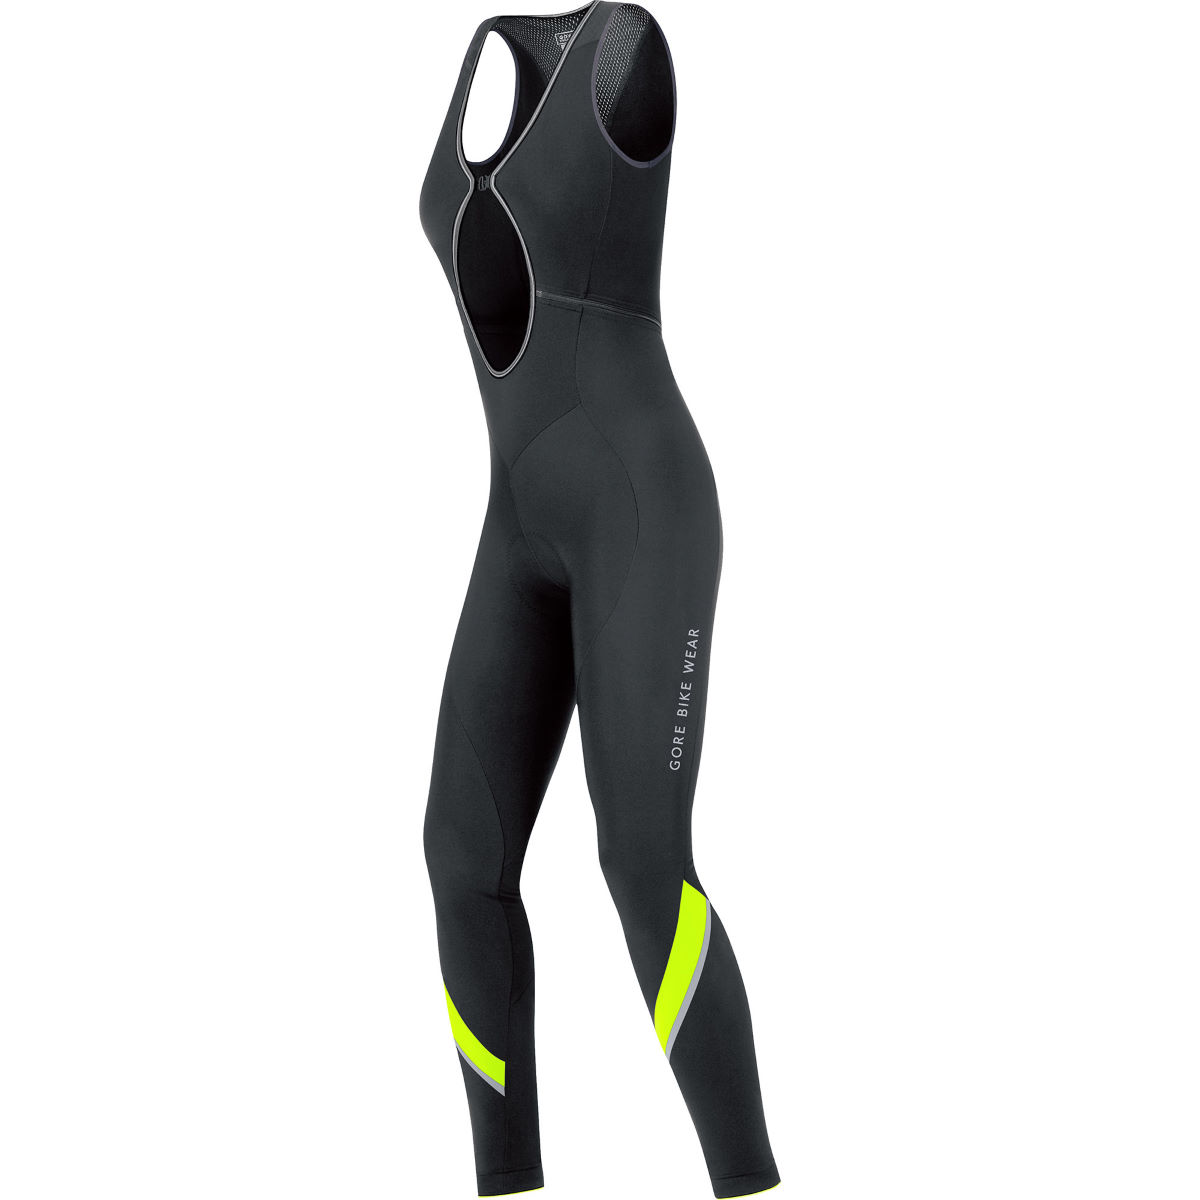 Cuissard long à bretelles Femme Gore Bike Wear Power 2.0 Thermo+ - XS Black/Neon Yellow Cuissards longs de vélo